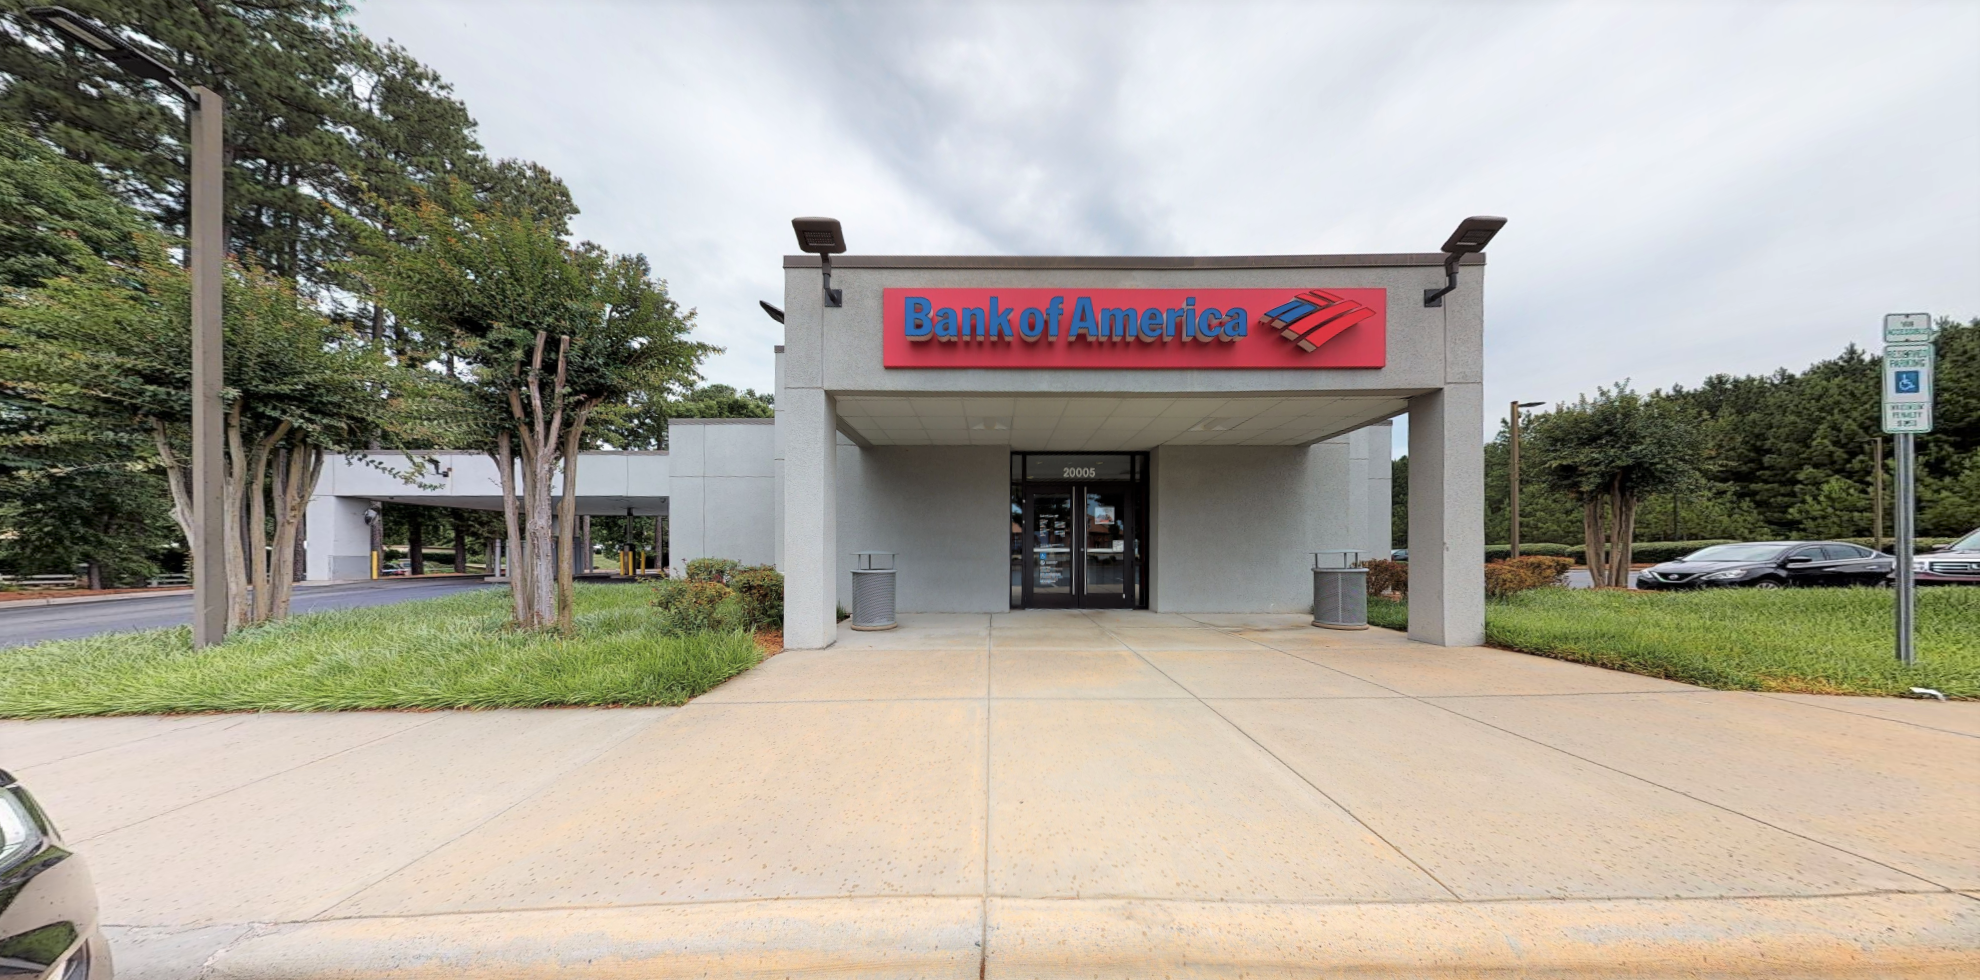 Bank of America financial center with drive-thru ATM and teller   20005 W Catawba Ave, Cornelius, NC 28031